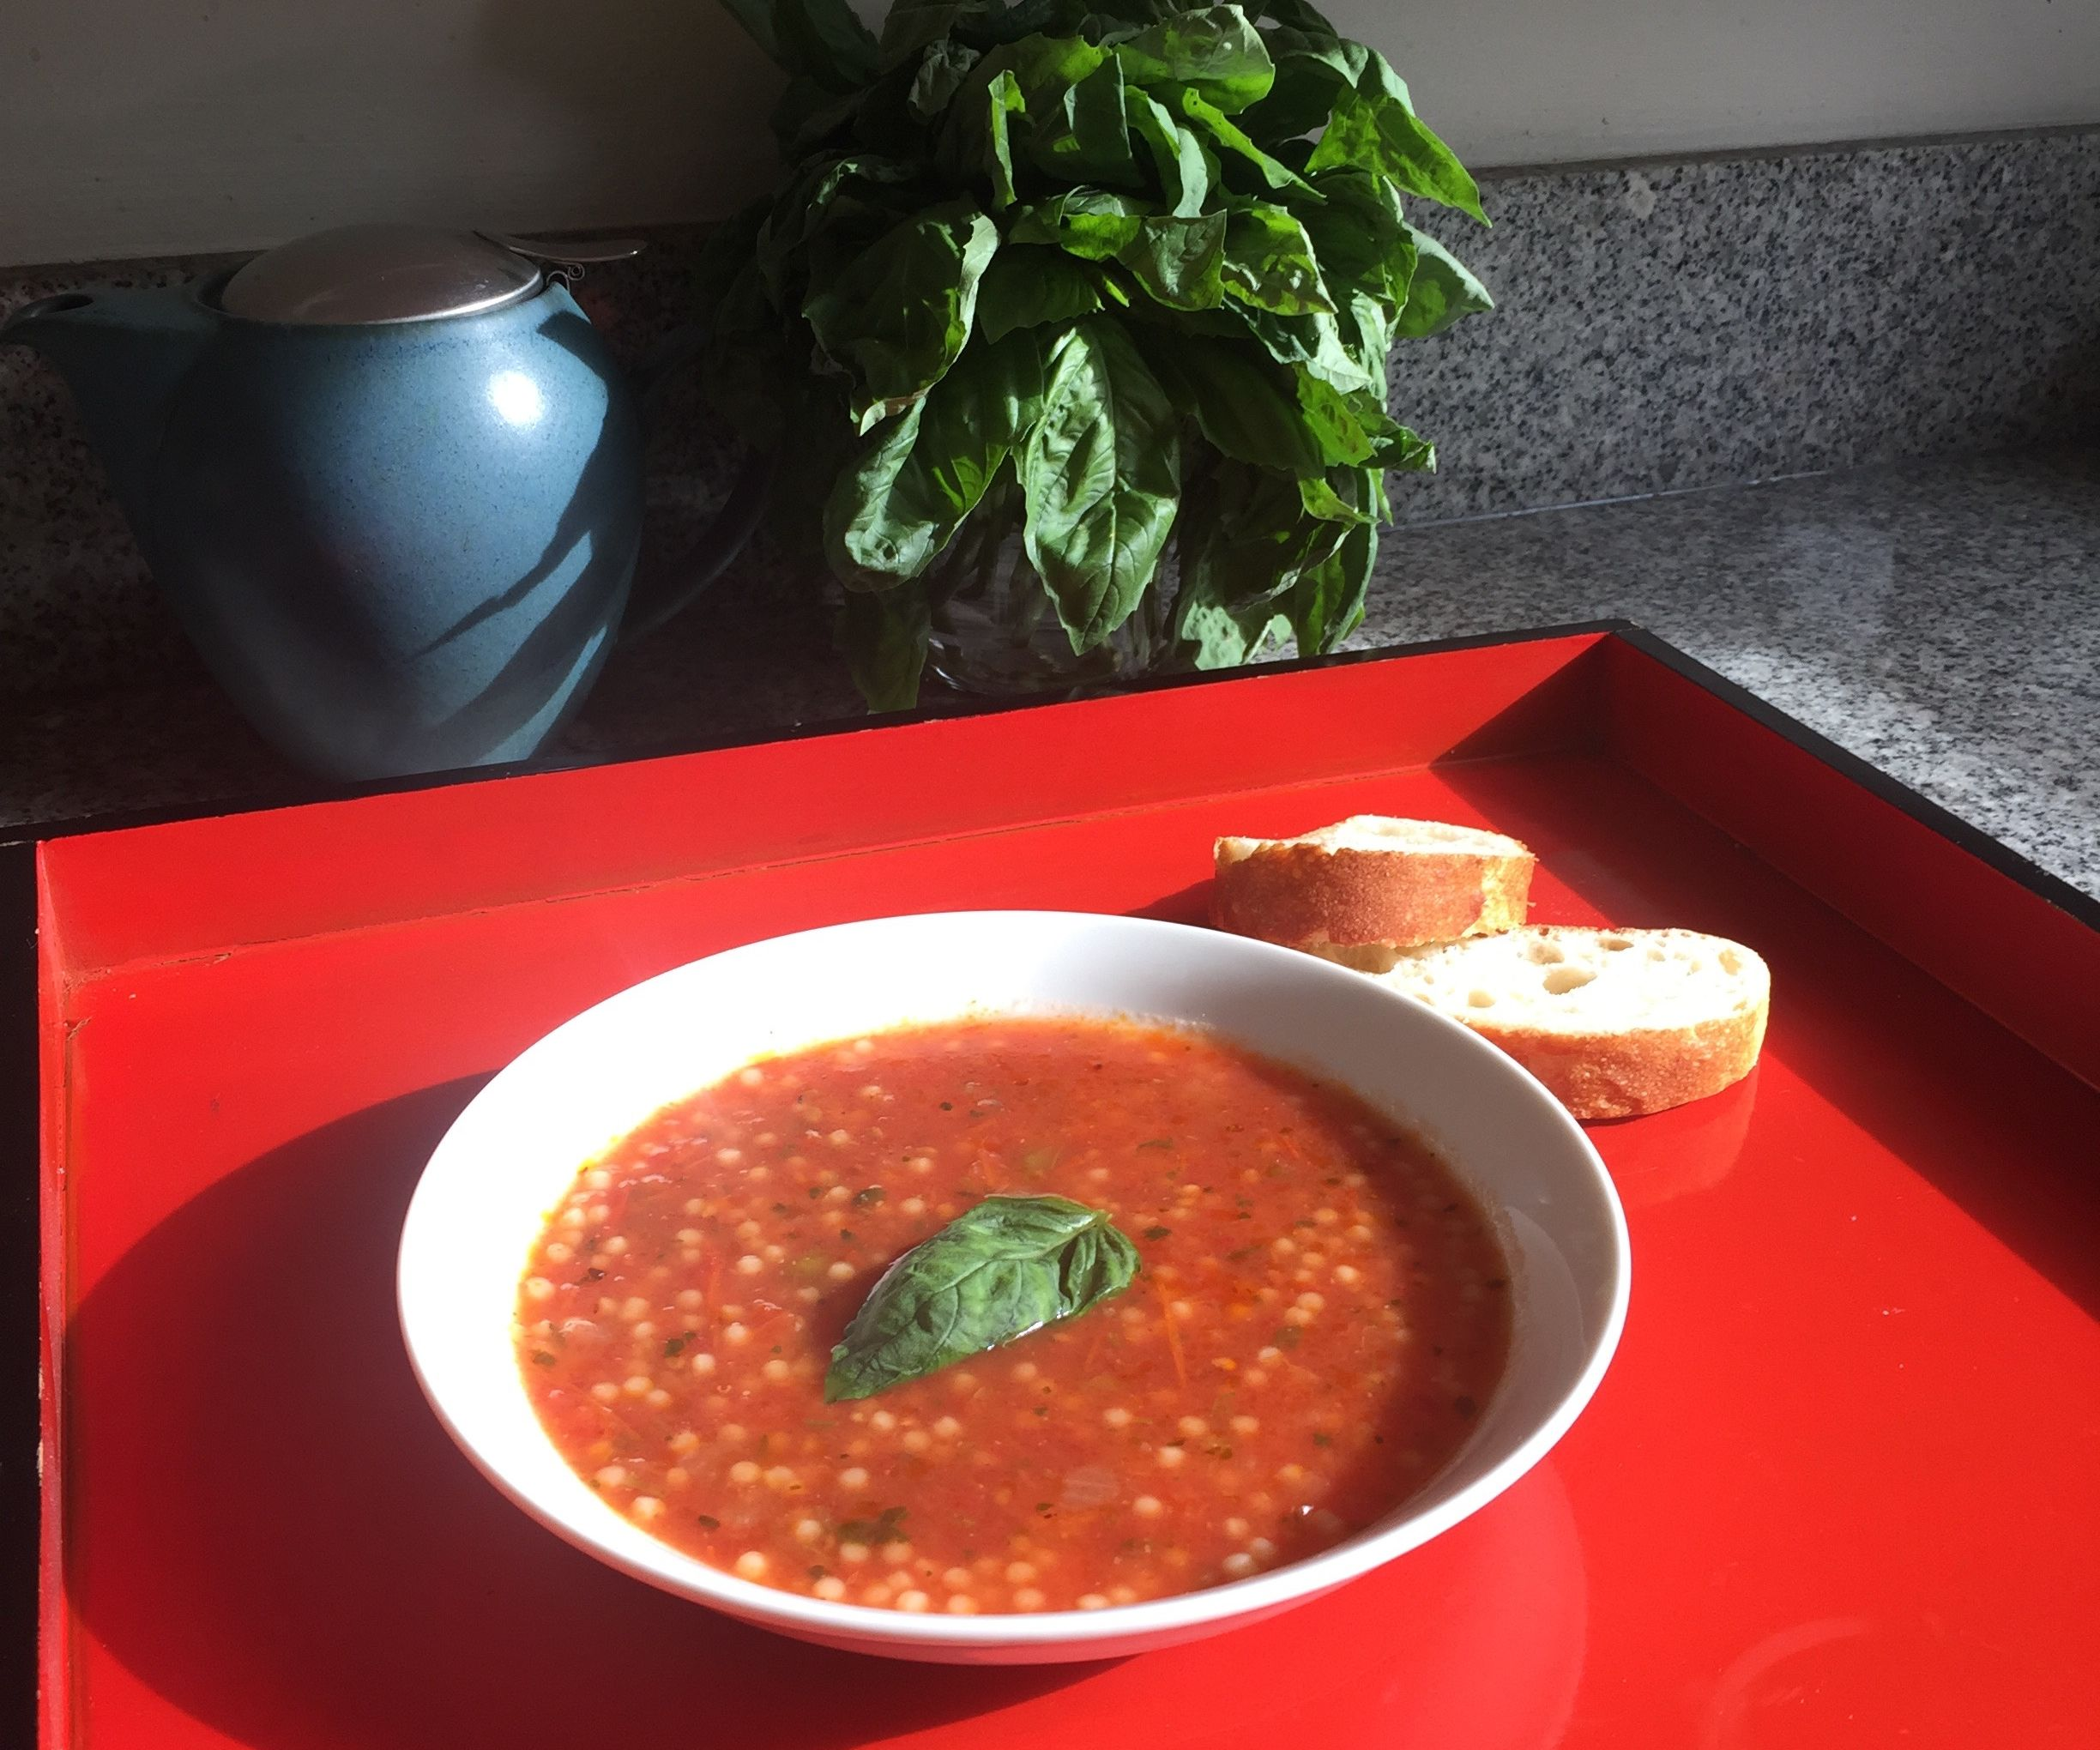 Tomato Soup from Salsa Hack